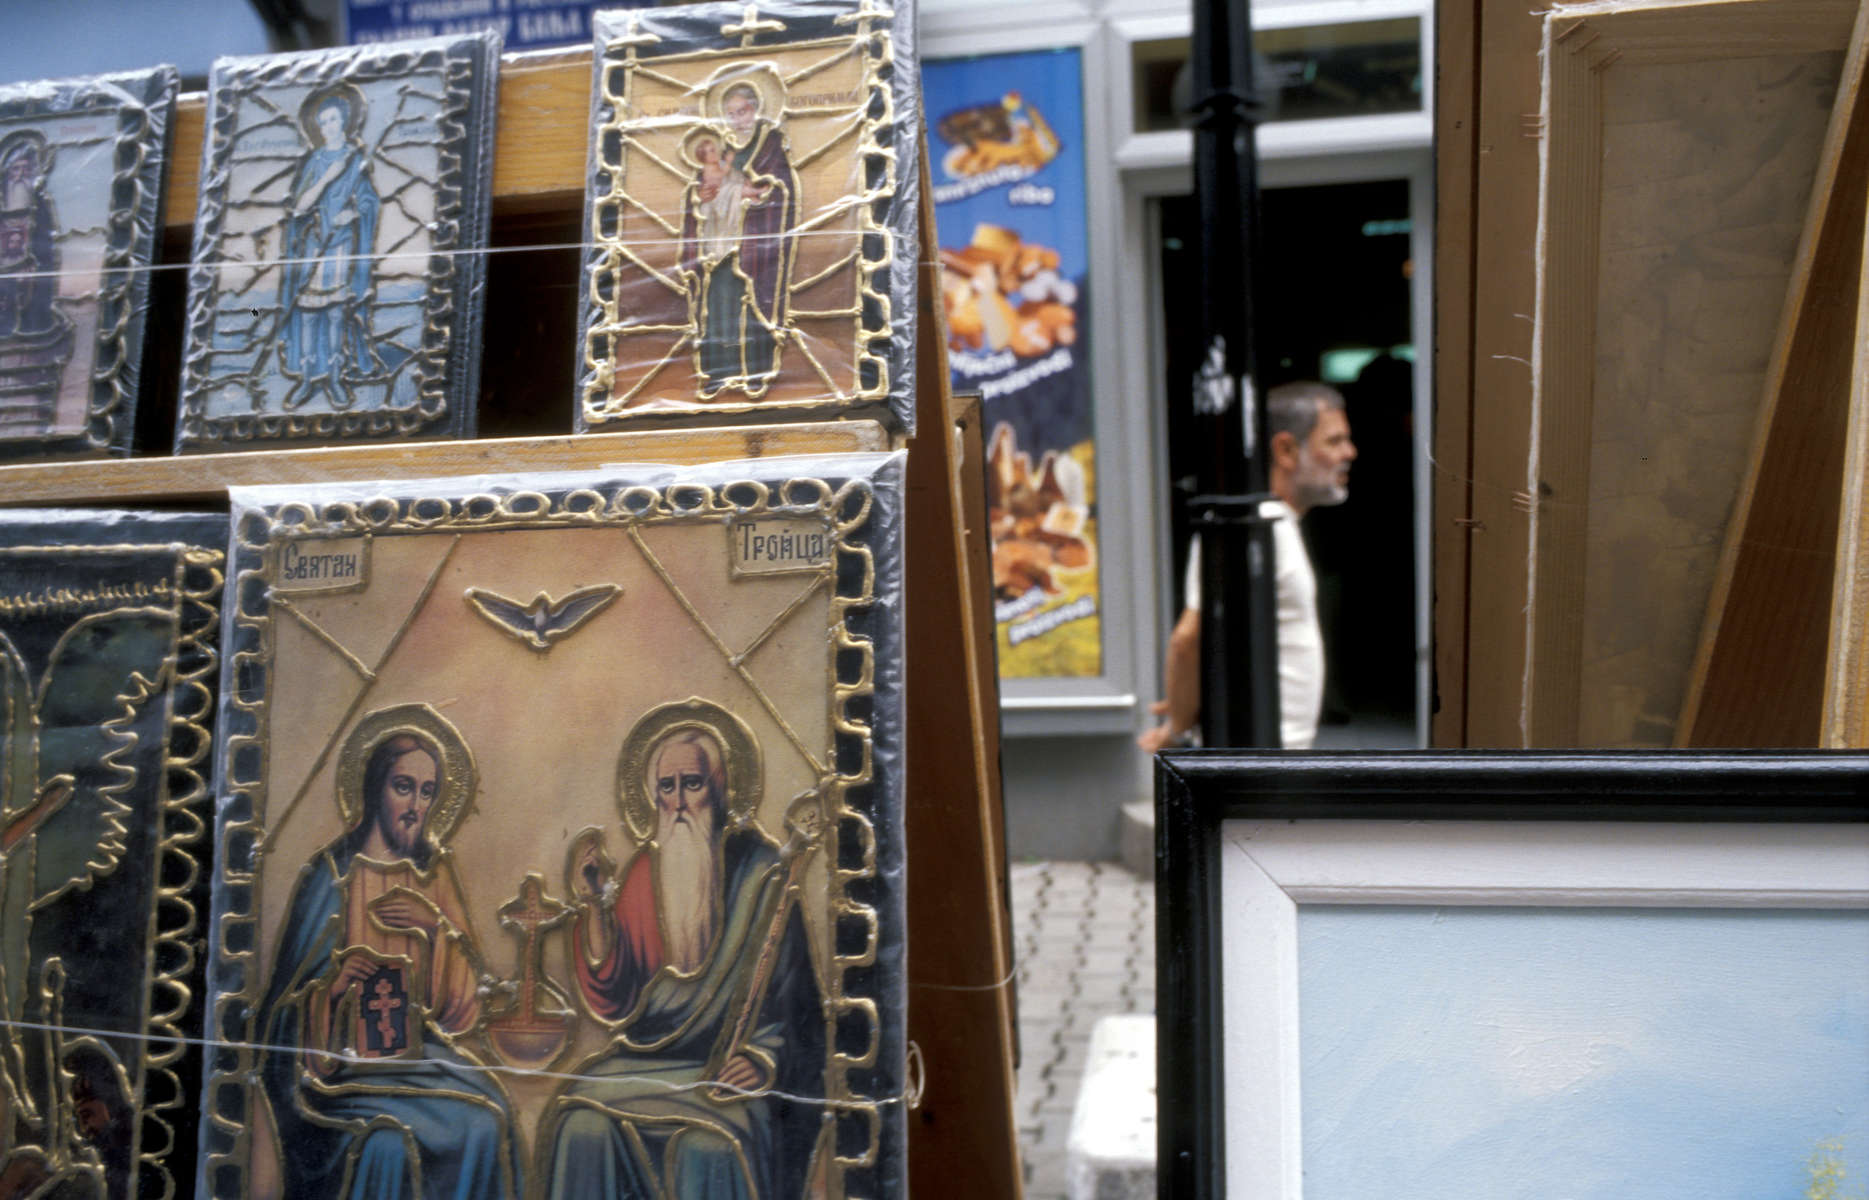 Orthodox art work for sale on the streets of Banja Luka, which is the capital of the Serb Republic entity which makes up 49 percent of Bosnia. Muslims were viciously \{quote}cleansed\{quote} during the war, and few have returned to live here since that time.